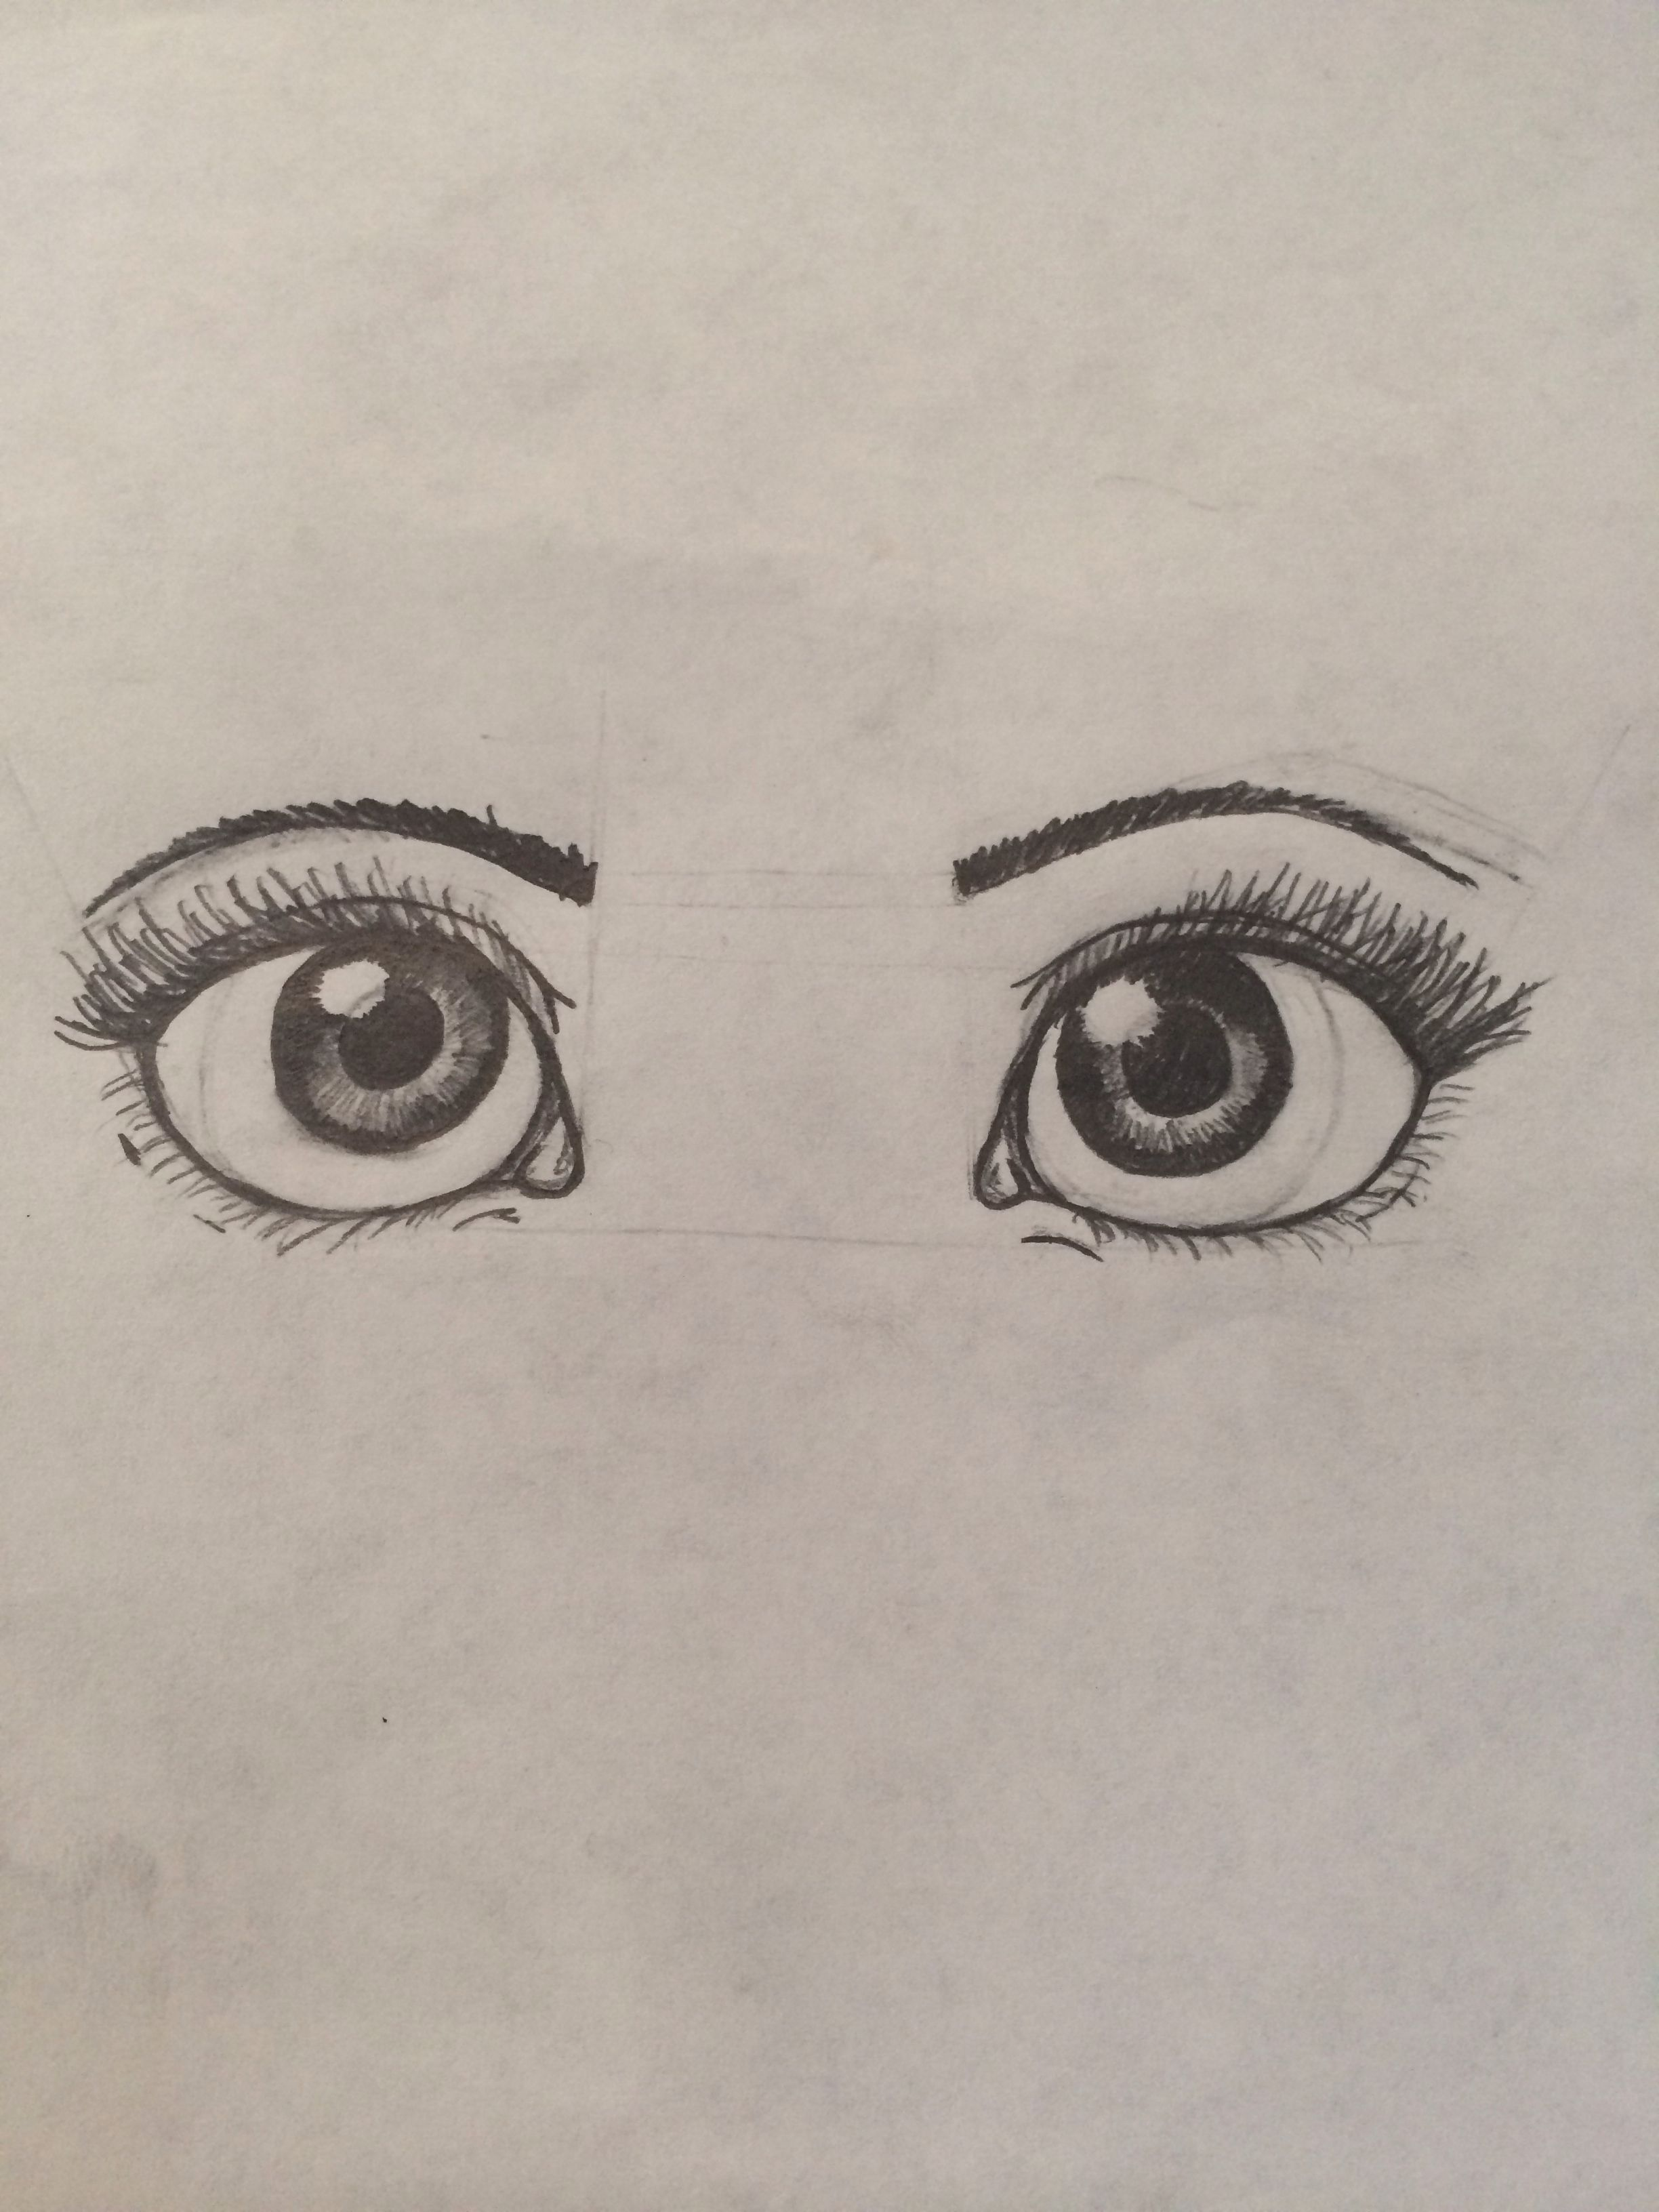 How To Draw Eyes In 2020 Eyes Drawing Tumblr Eye Drawing Anime Drawings Sketches